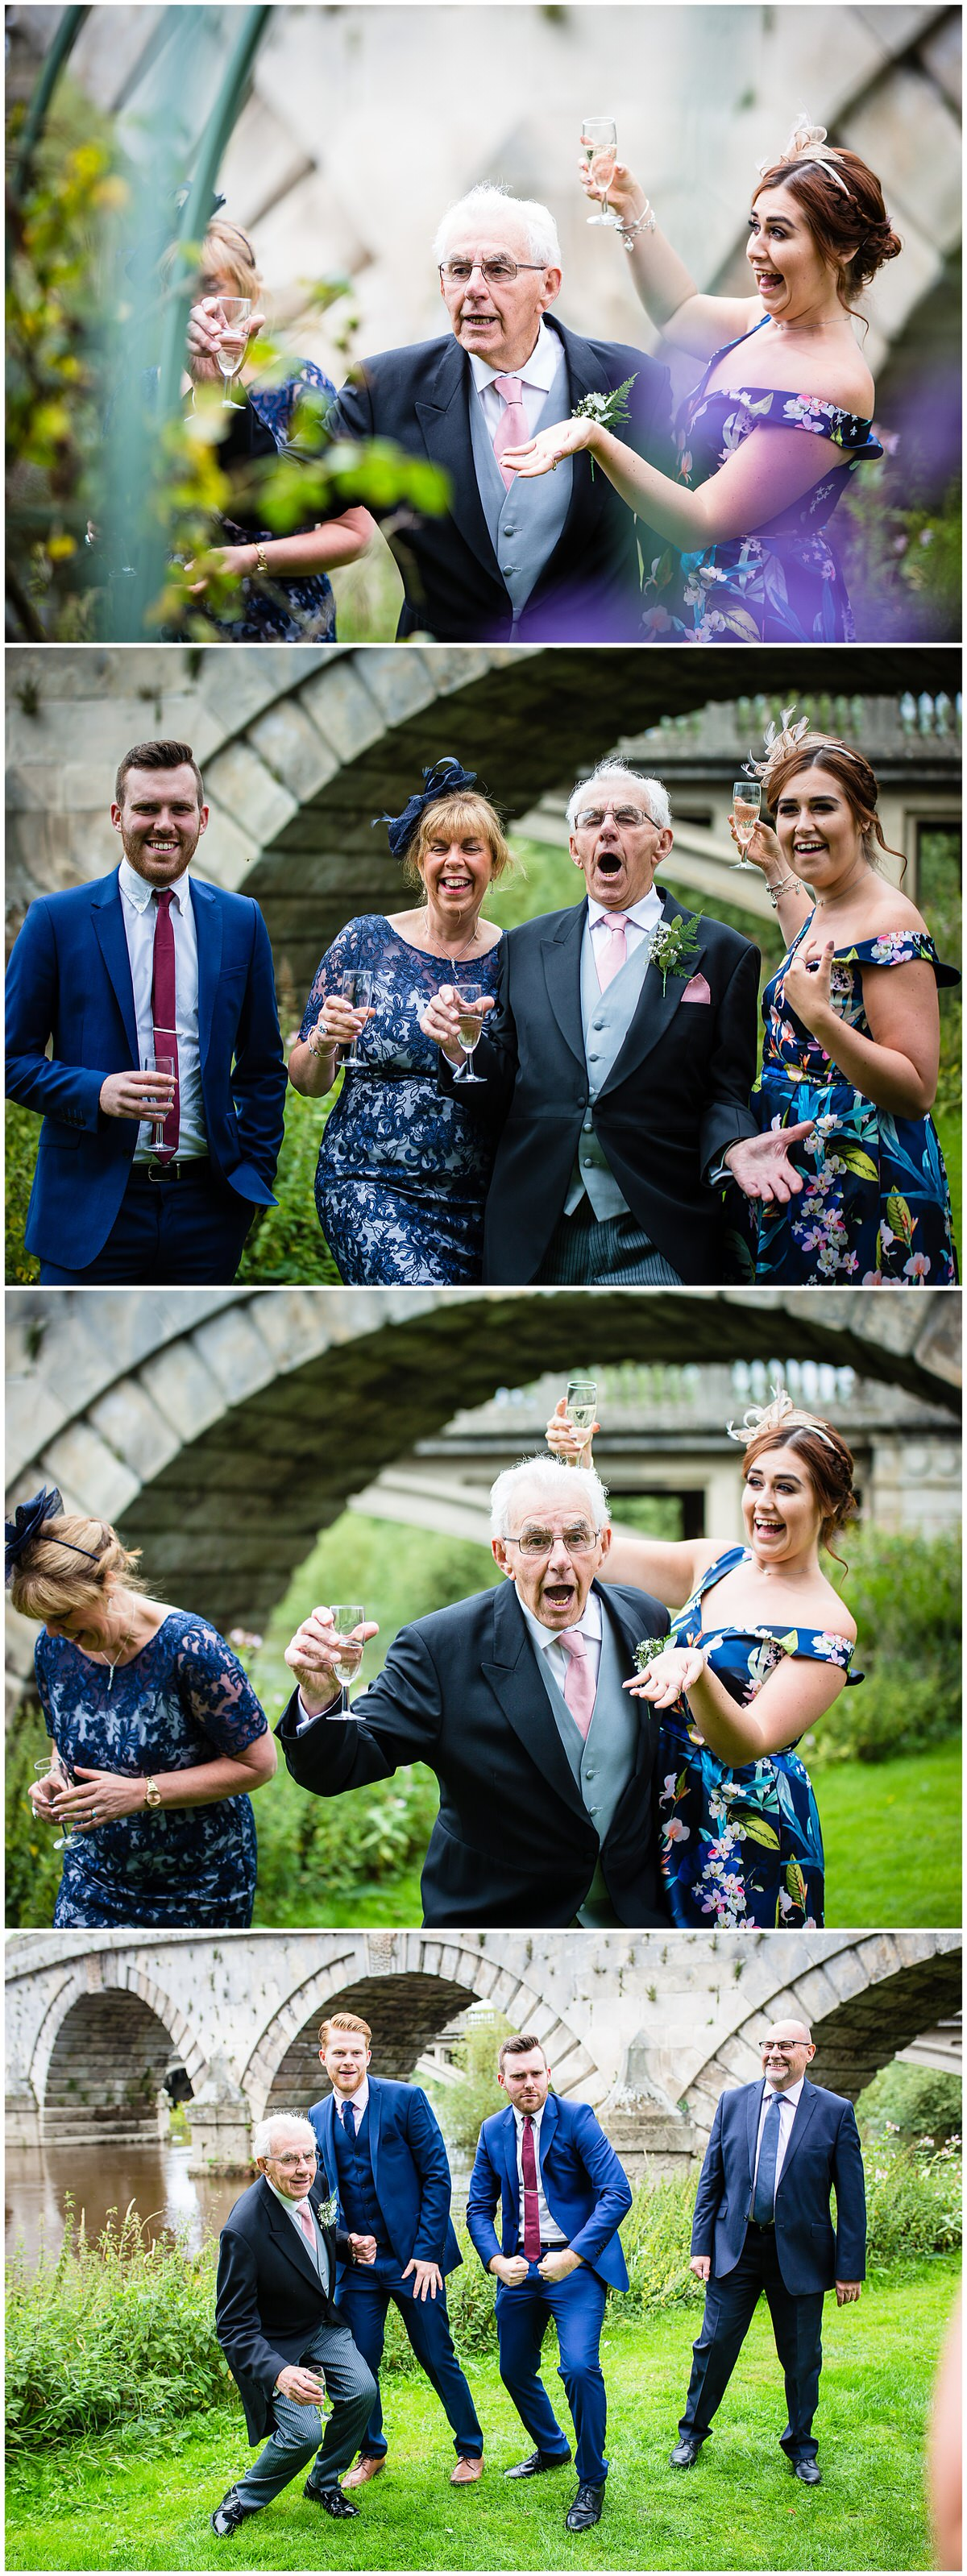 crazy grandad making guests laughing at wedding - charlotte giddings photography